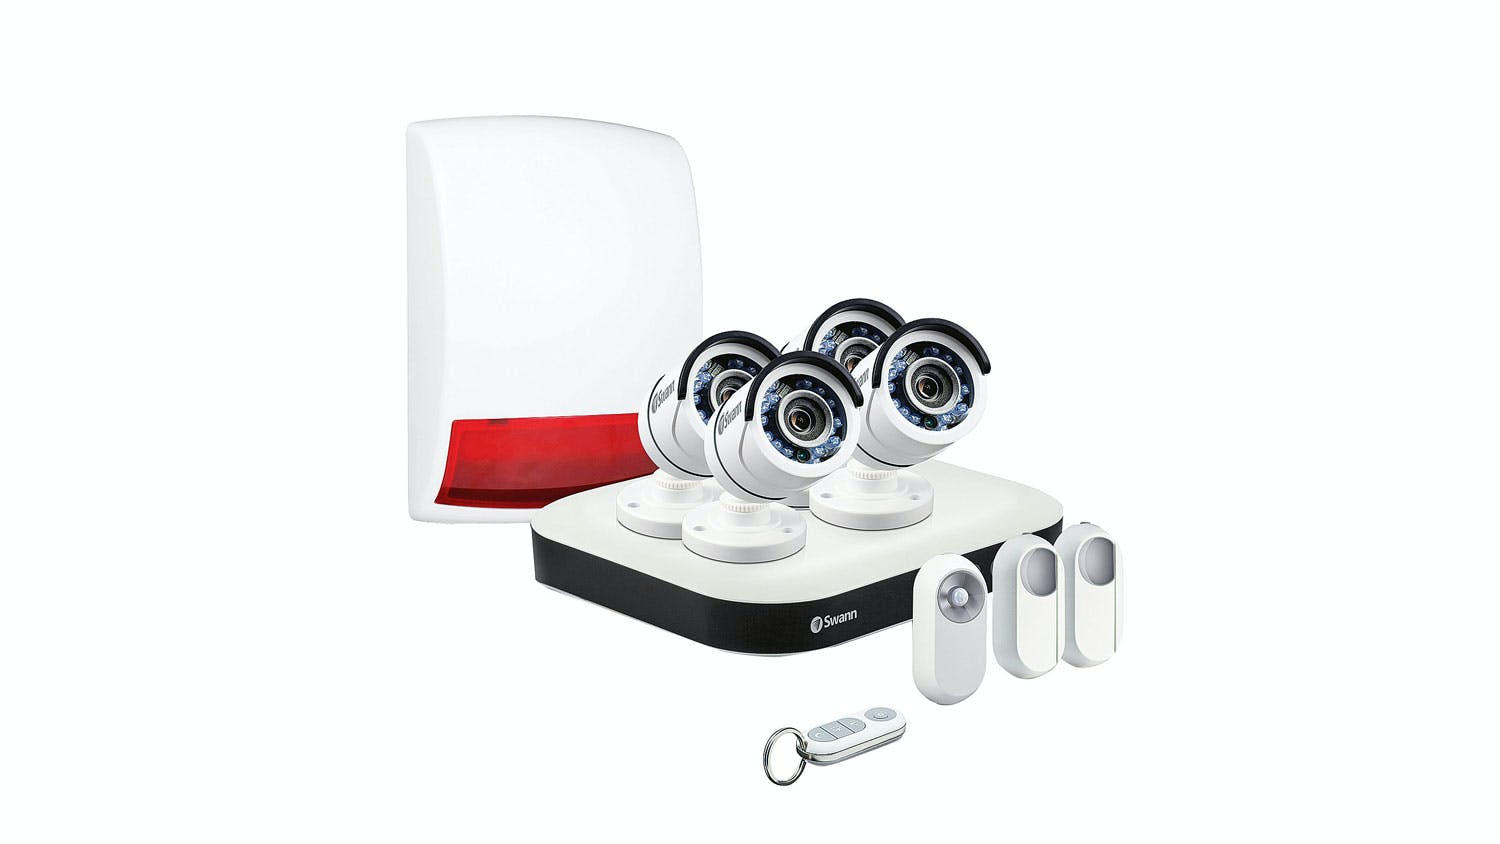 Swann smart hd home security system kit harvey norman new zealand solutioingenieria Choice Image